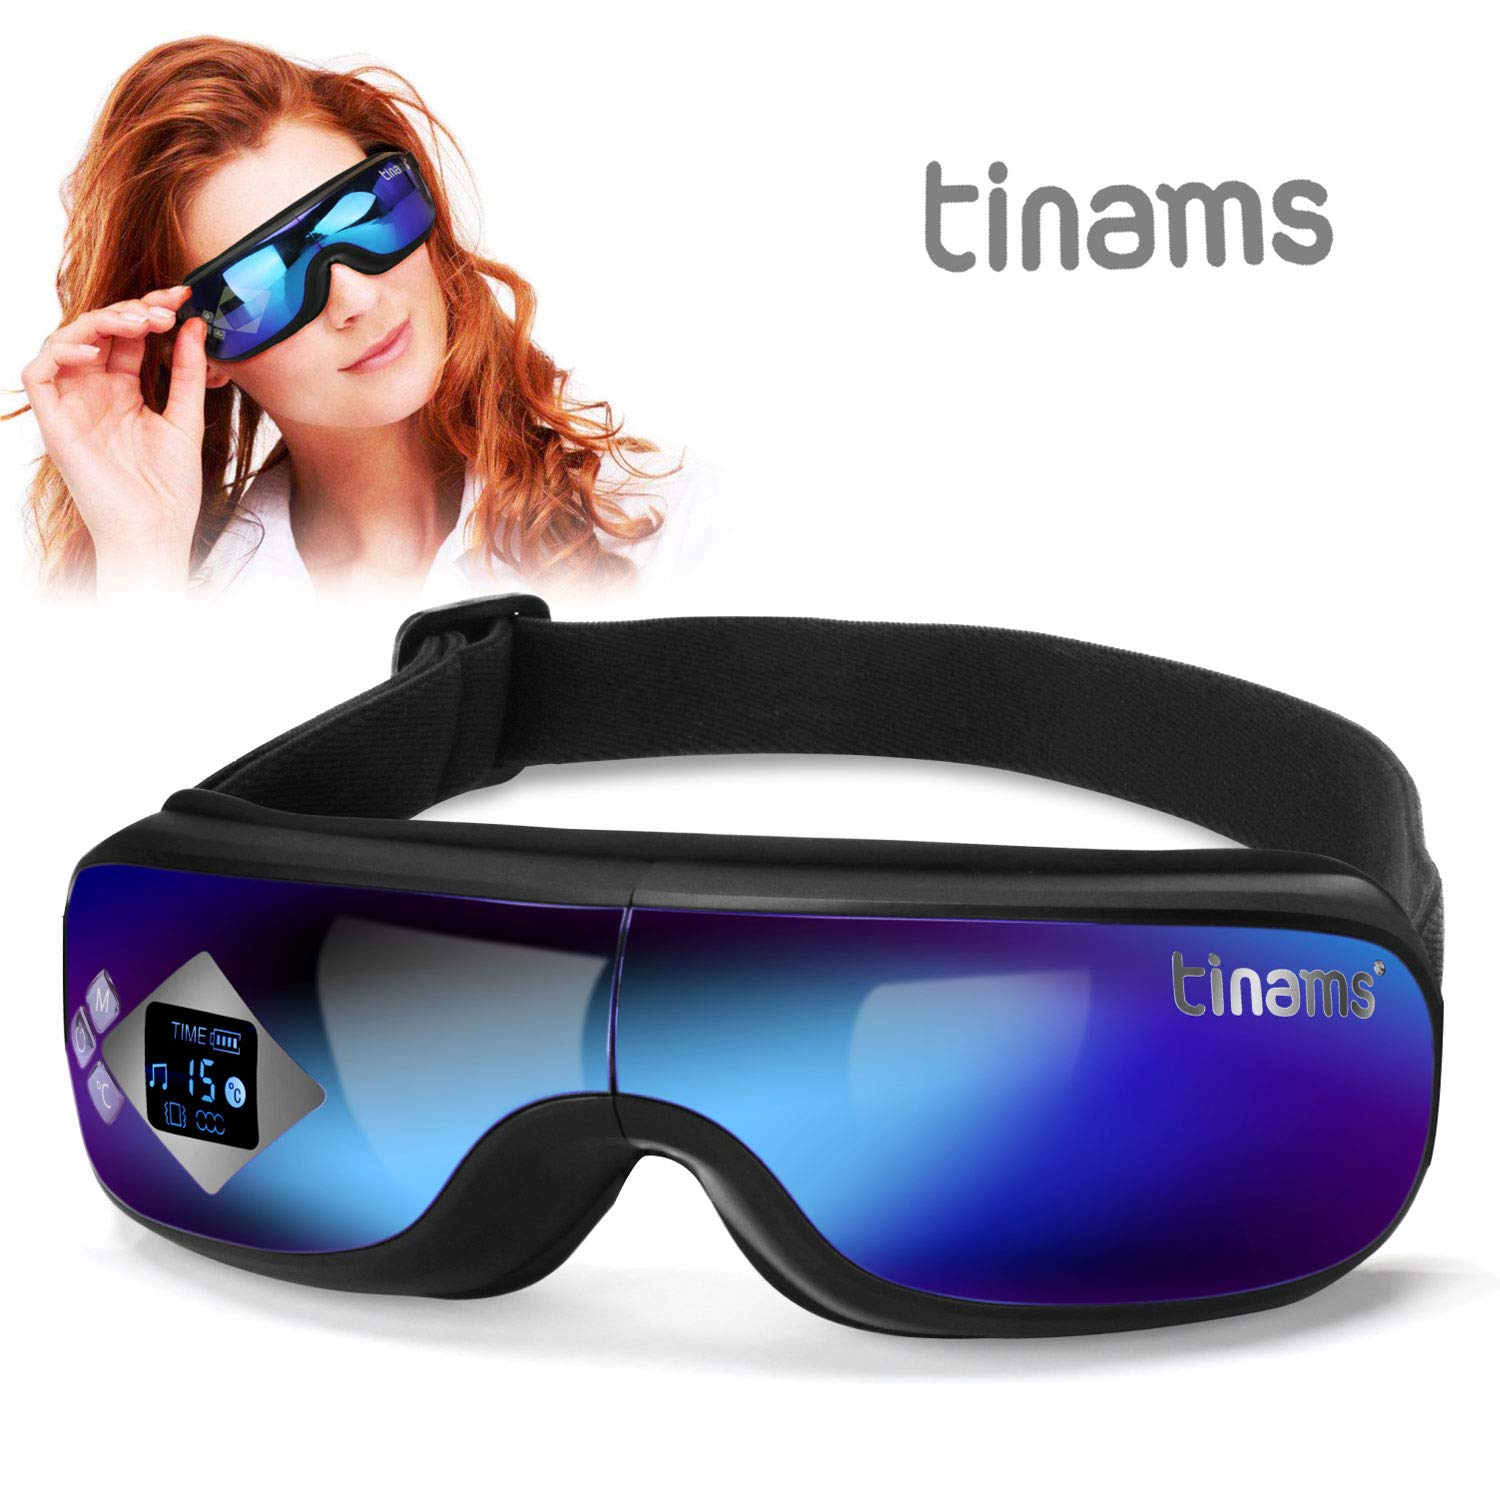 Tinams Electric Eye Massager with Graphene Heating, Smart Massage Eye Mask Portable Eye Massager for Dry Eye Eyestrain Fatigue Relief by tinams